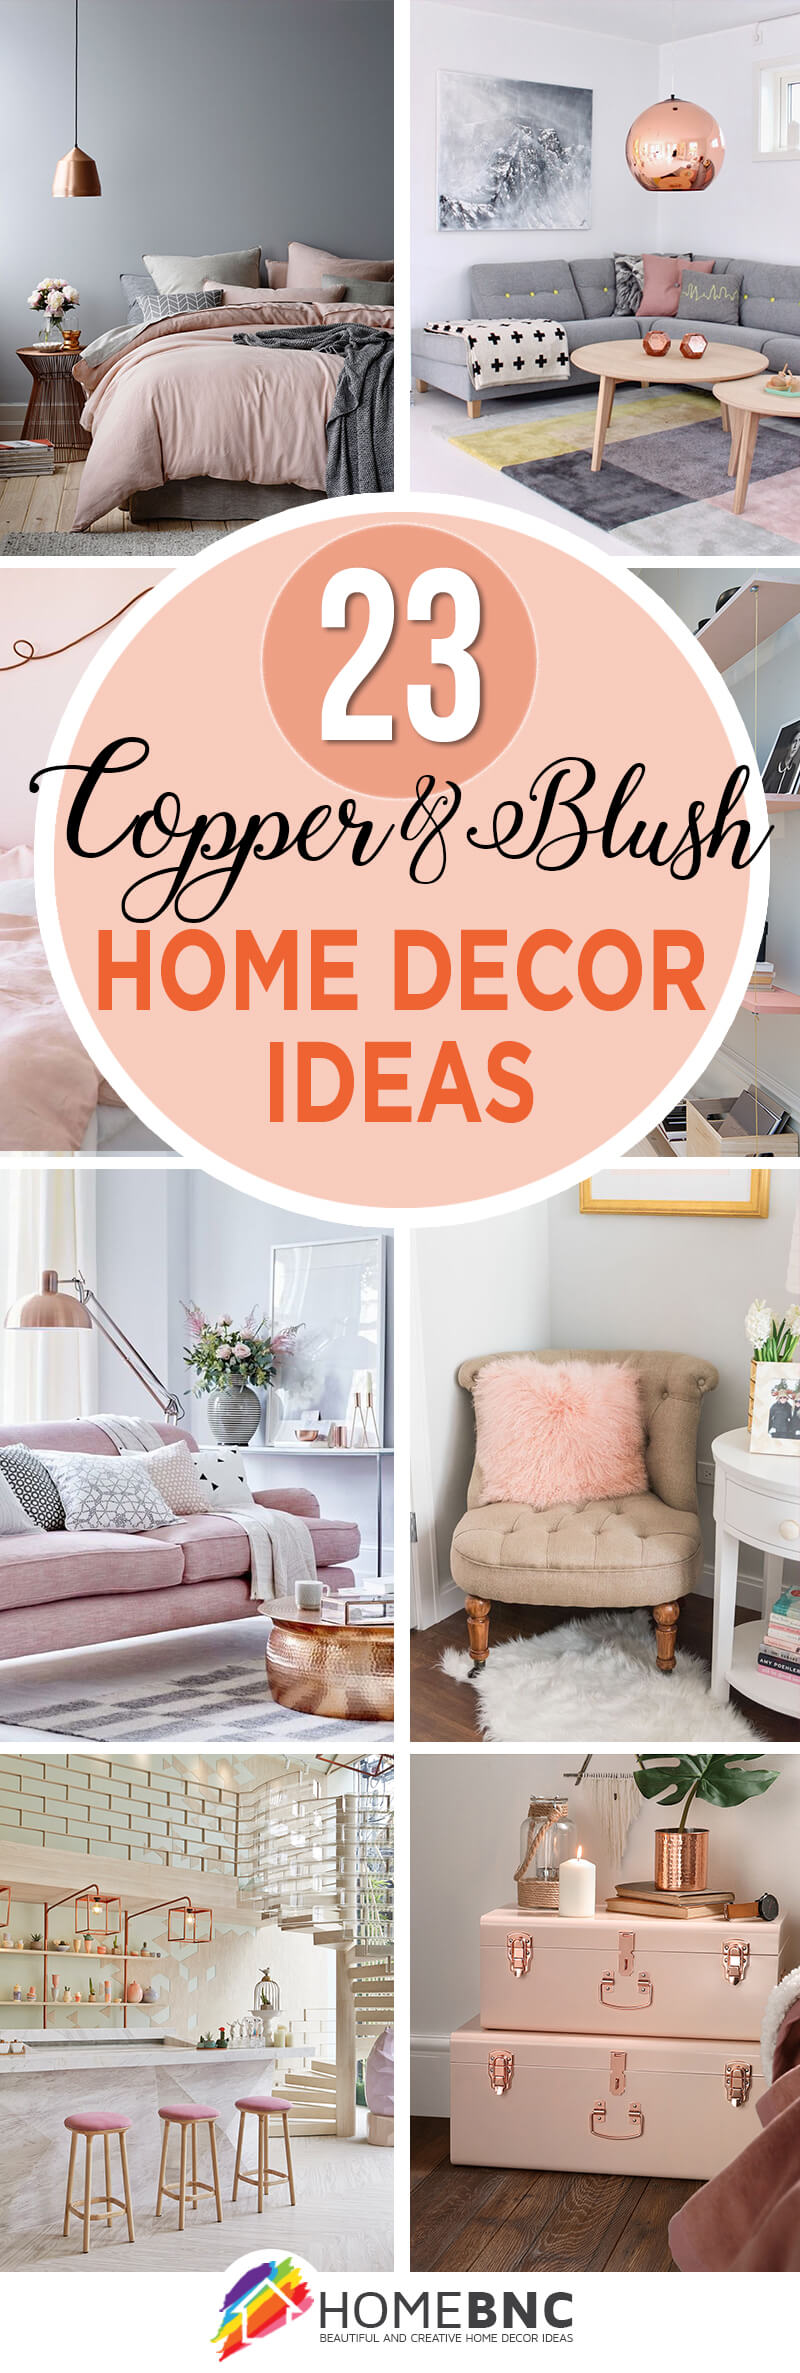 Decoration Chambre Uk 23 Best Copper And Blush Home Decor Ideas And Designs For 2019